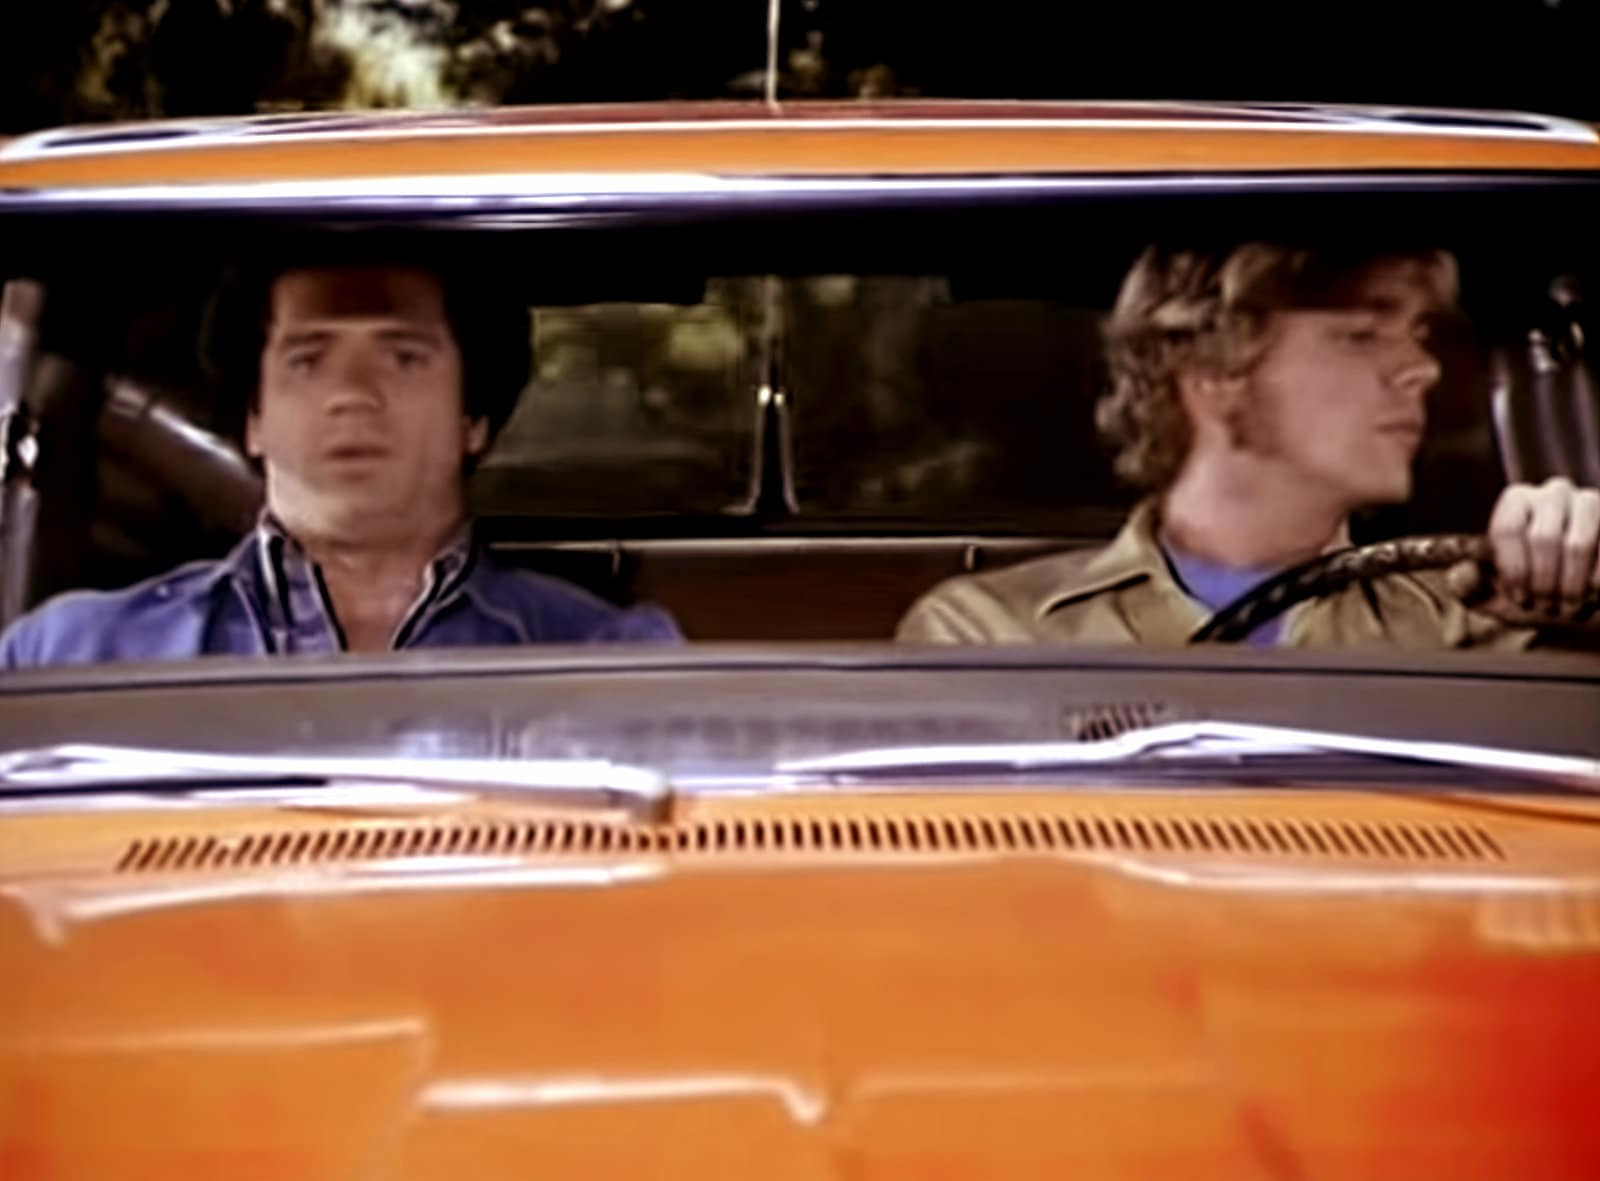 The Dukes of Hazzard TV series - In the car